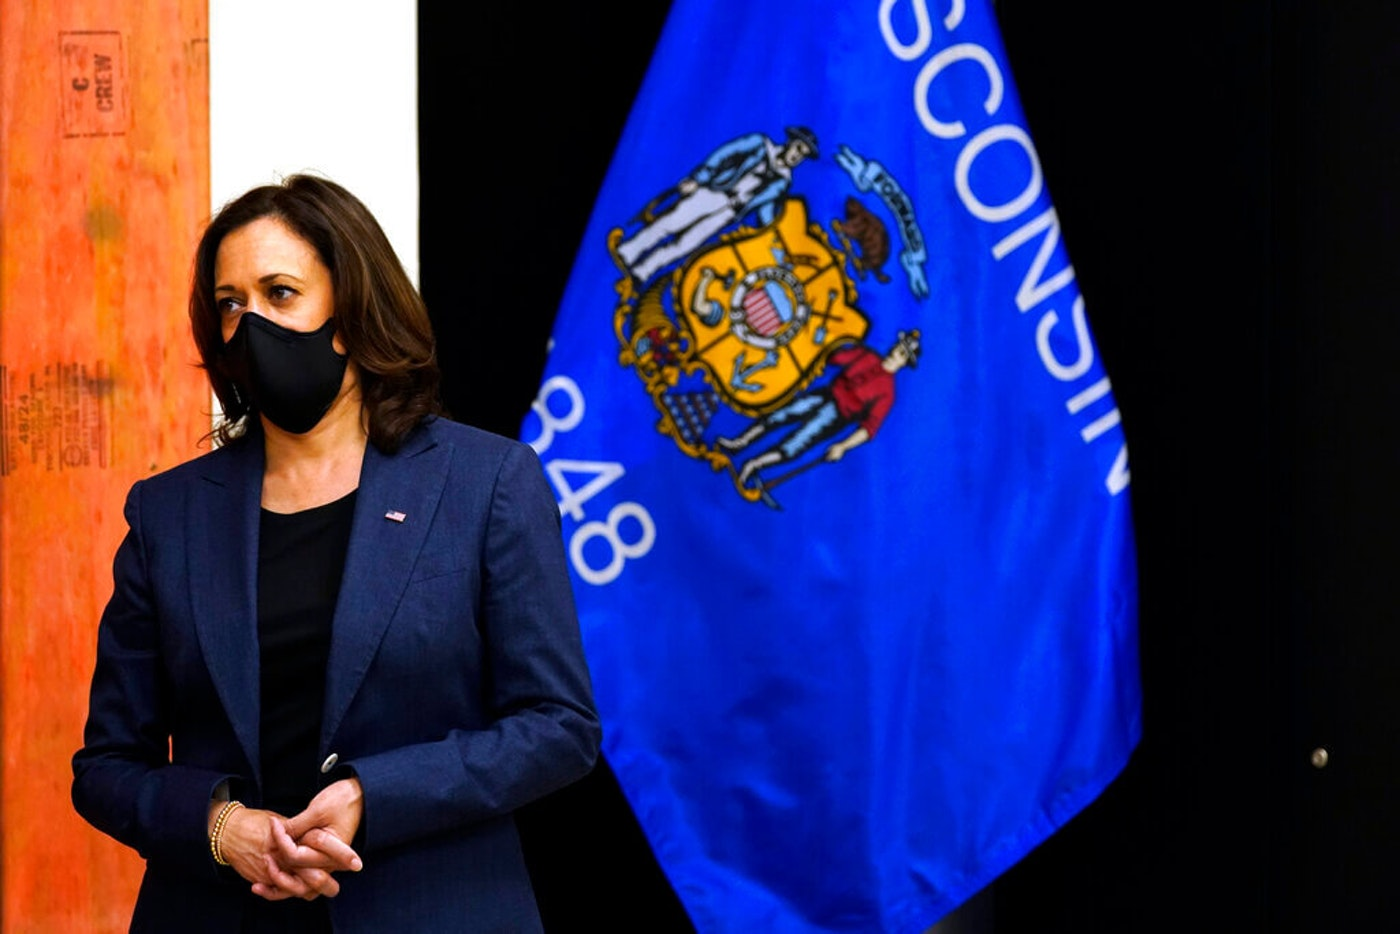 Democratic vice presidential candidate Sen. Kamala Harris, D-Calif., talks about her meeting with the family of Jacob Blake during a tour of the IBEW 494 training facility Monday, Sept. 7, 2020, in Milwaukee. (AP Photo/Morry Gash)